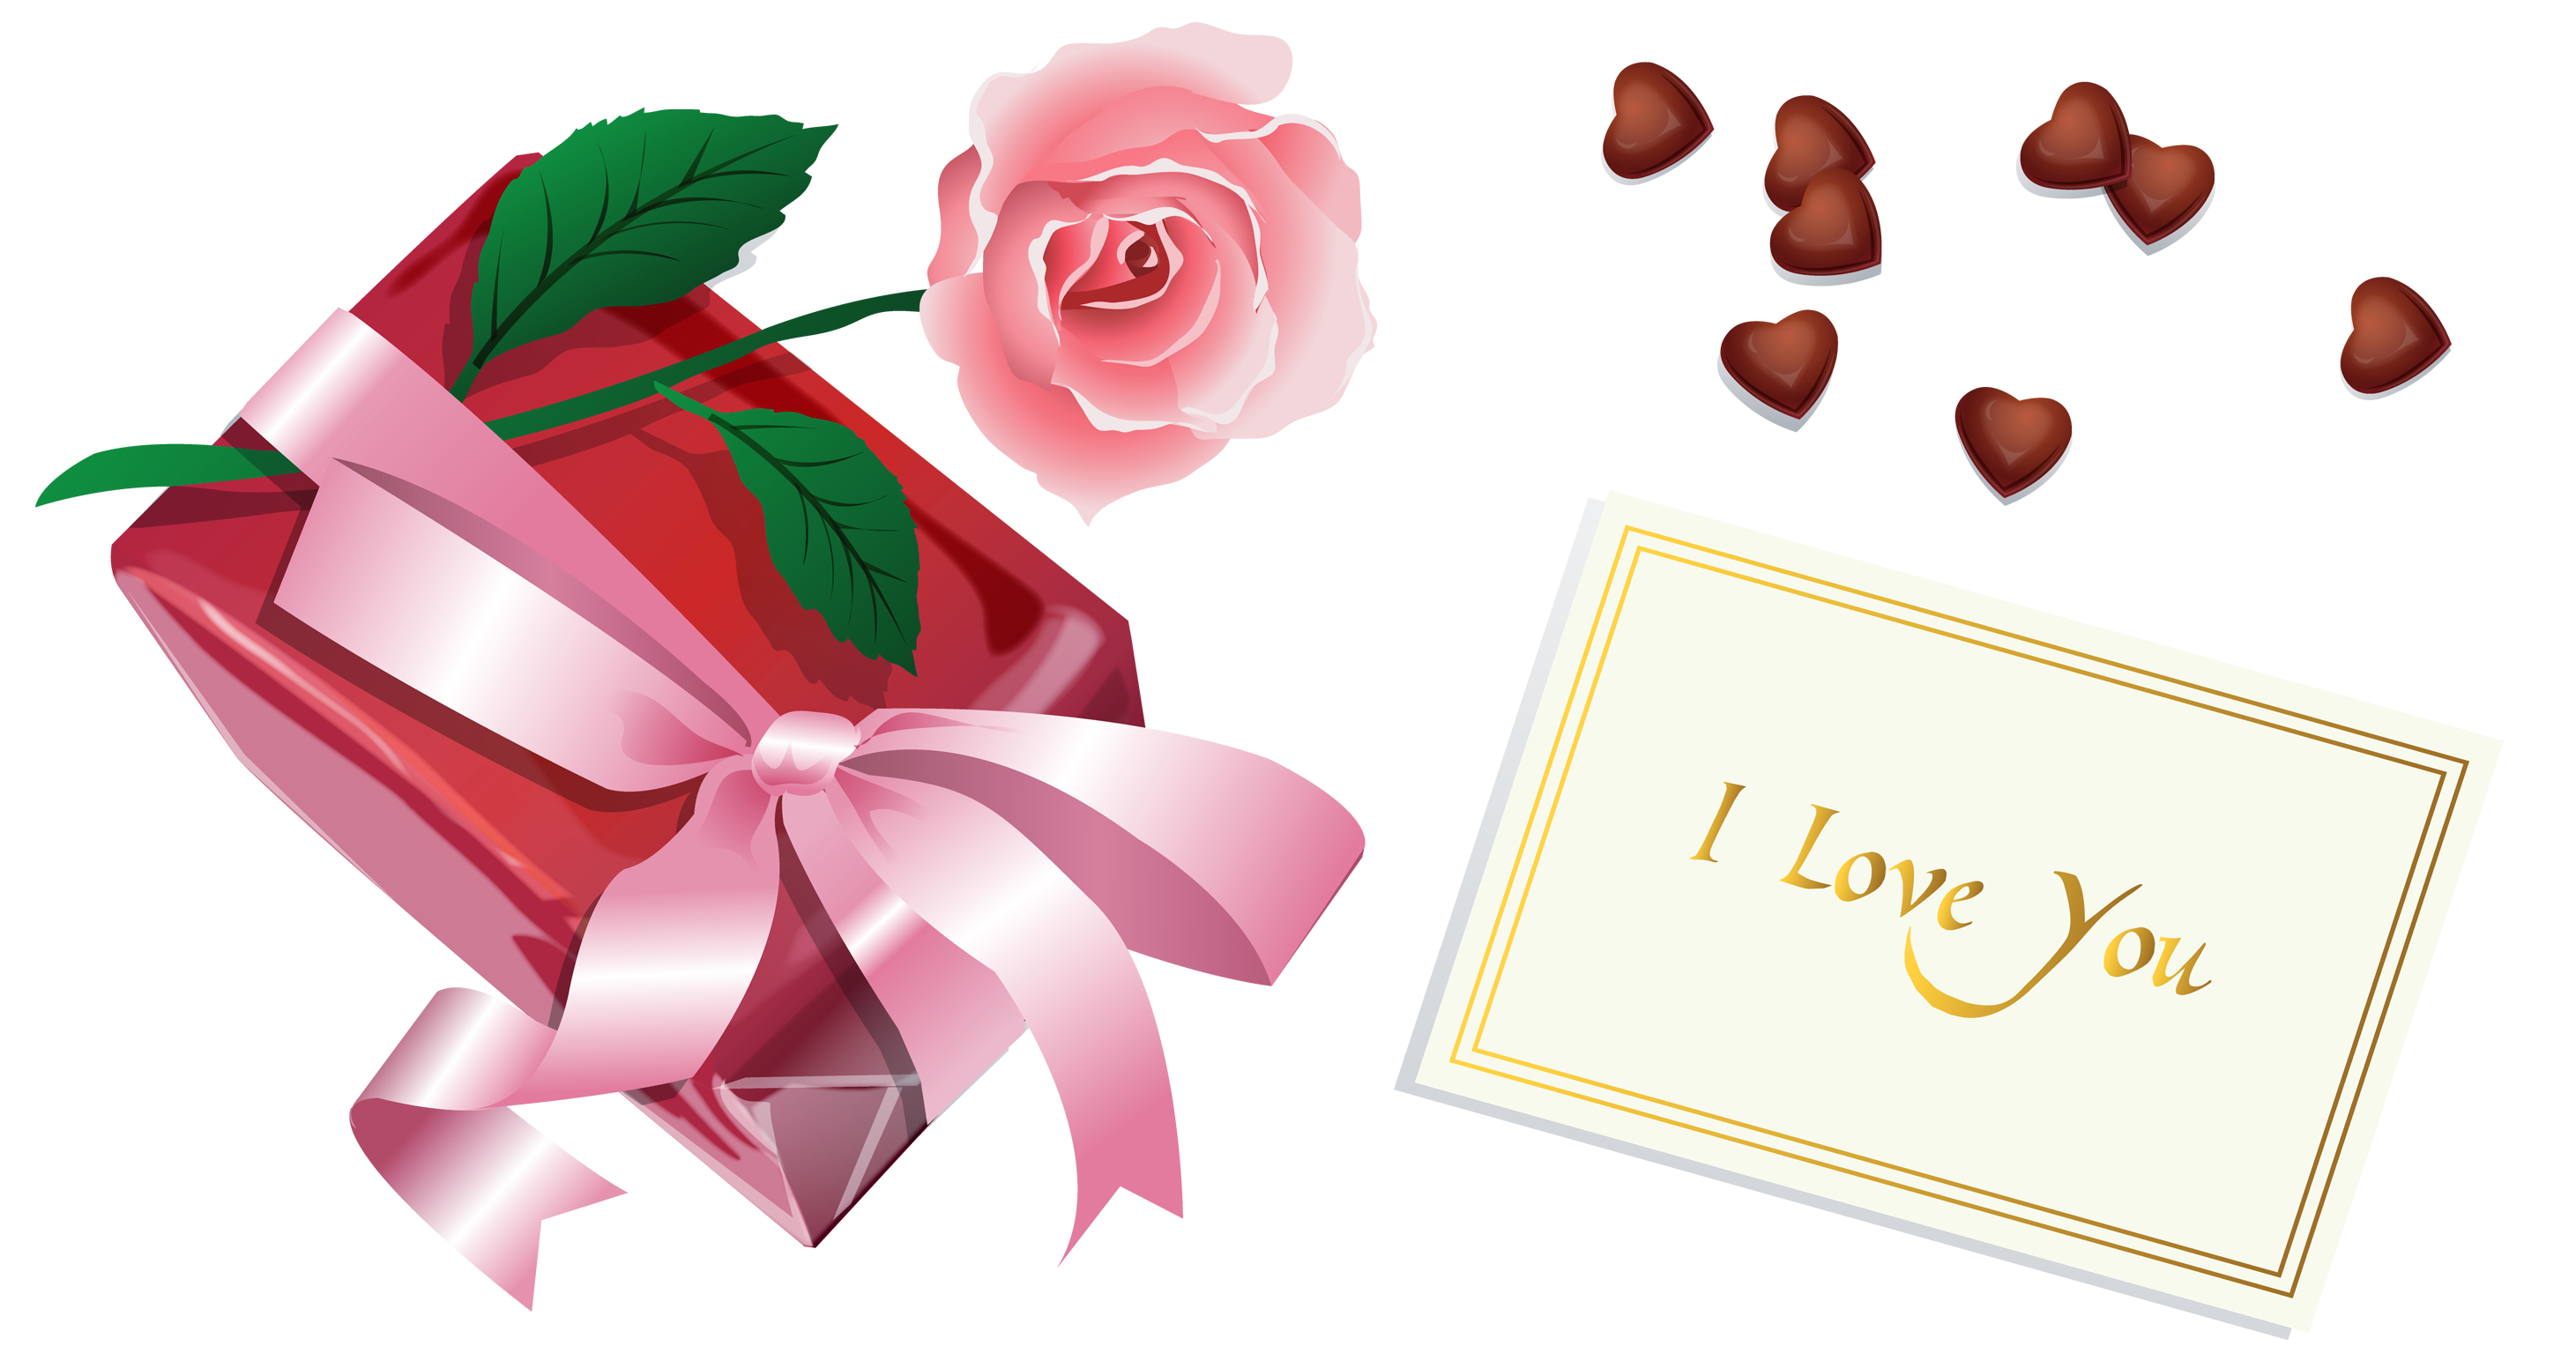 Valentine gift png. Clipart gallery yopriceville high